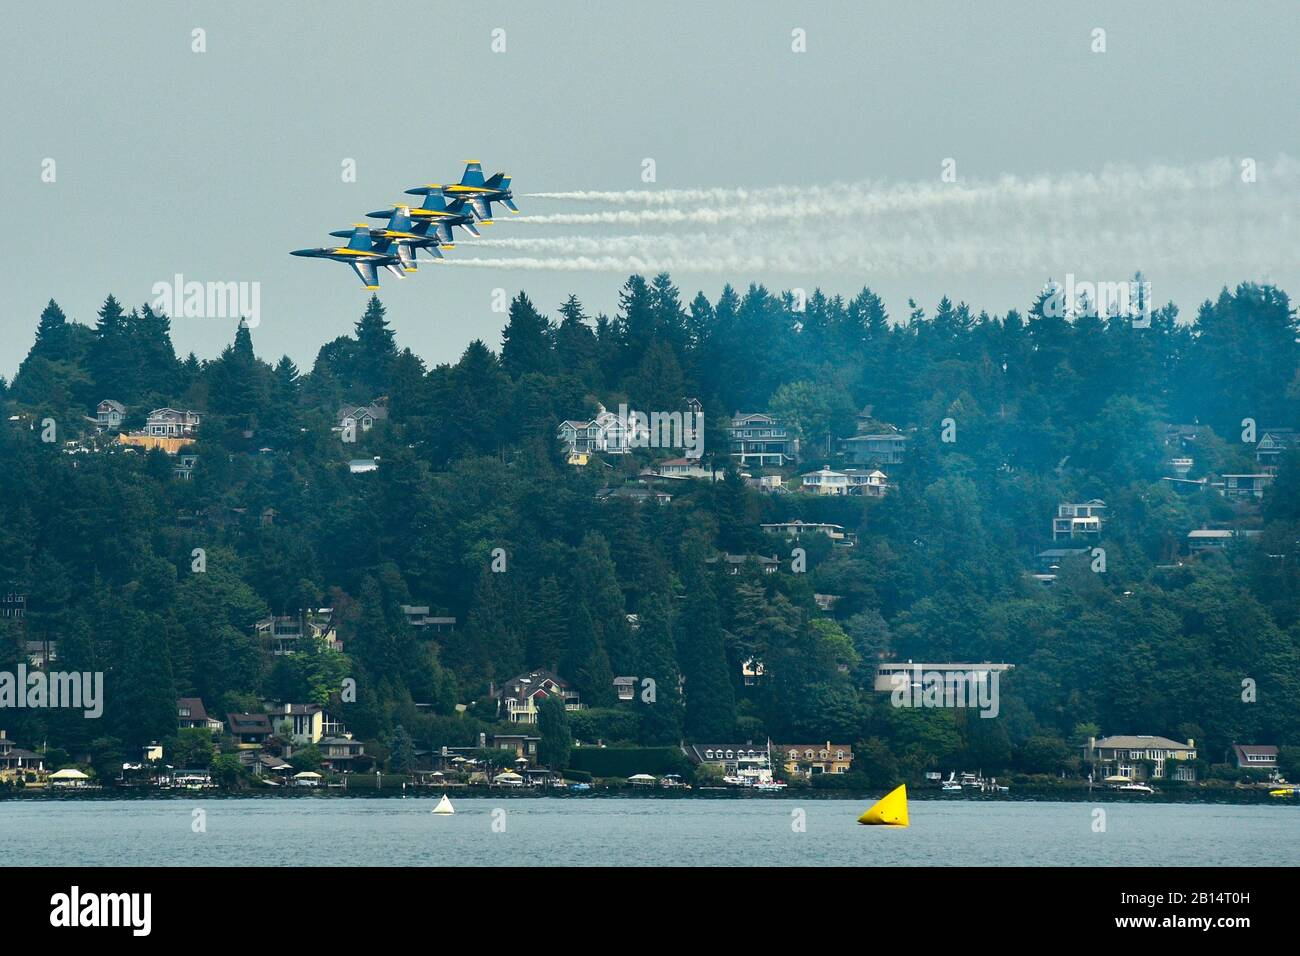 170805-N-SH284-443 SEATTLE (Aug. 5, 2017) The U.S. Navy Flight Demonstration Squadron, the Blue Angels, fly in formation over Lake Washington, during the 68th annual Seafair Fleet Week. Seafair Fleet Week is an annual celebration of the sea services wherein Sailors, Marines and Coast Guard members from visiting U.S. Navy and Coast Guard ships and ships from Canada make the city a port of call. (U.S. Navy photo by Mass Communication Specialist 2nd Class Vaughan Dill/Released) Stock Photo